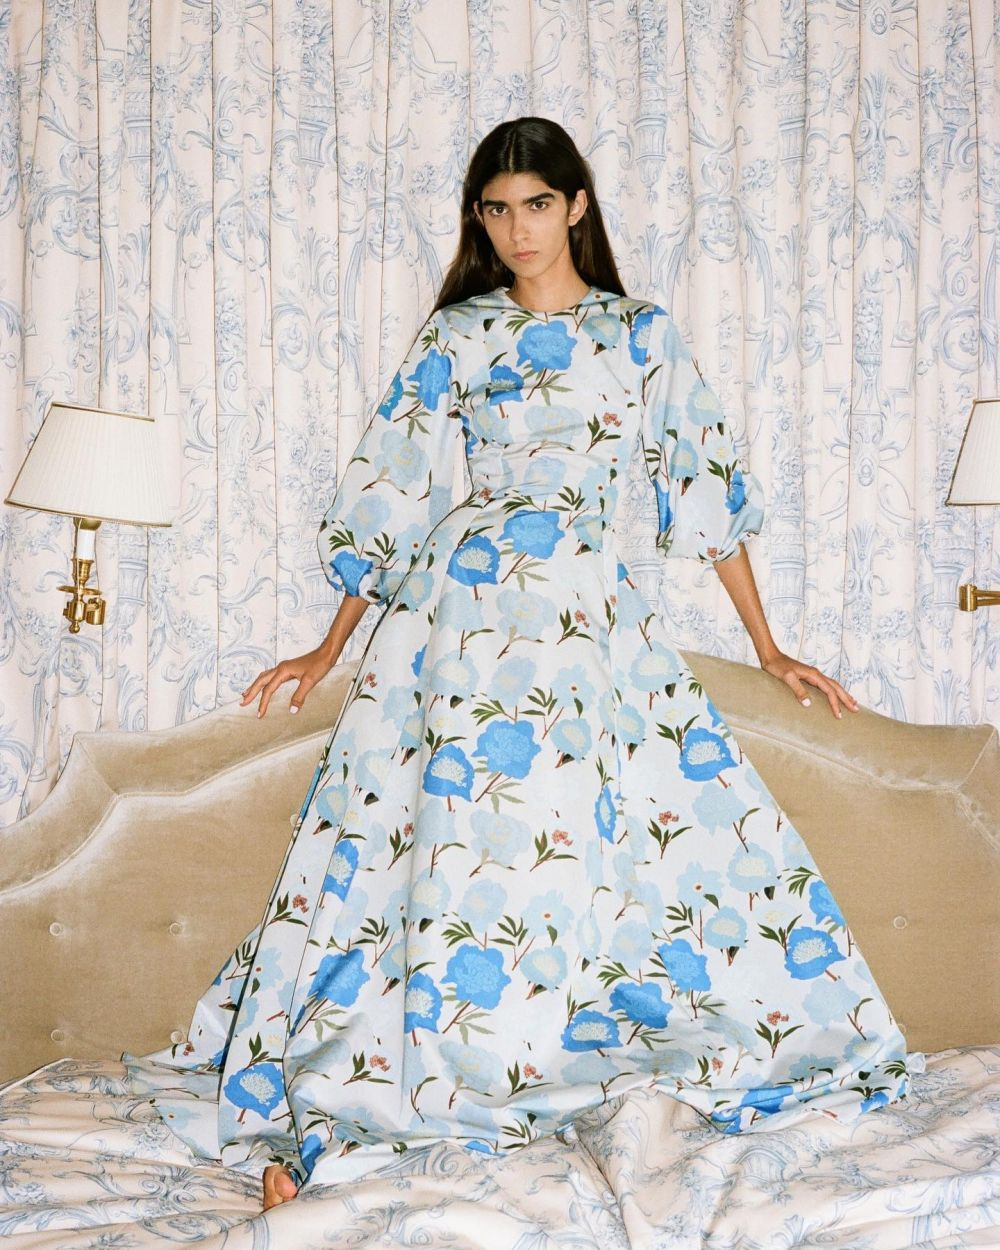 Staying in and dressing up for myself, because life is too short not to ~ Blue peonies printed on crisp taffeta. #SS22